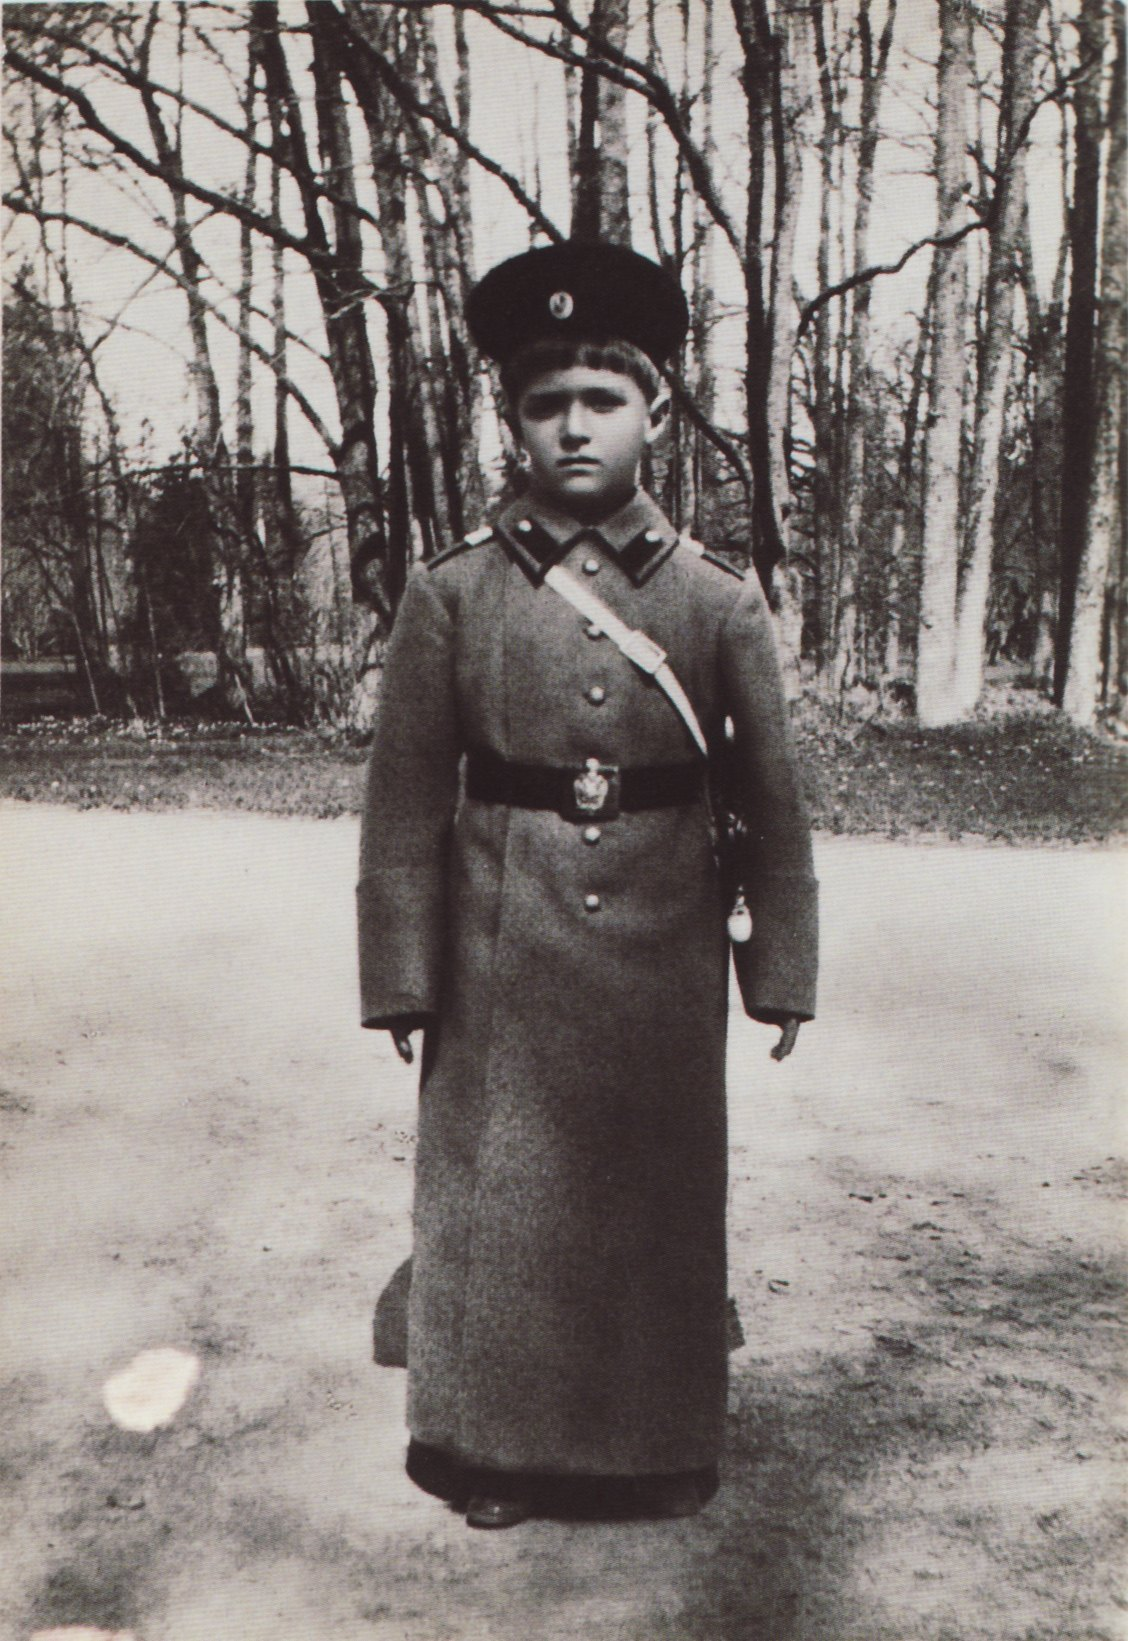 godsavethetsar:  Tsarevich Alexei Nikolaevich in 1911 supposedly at Tsarskoe Selo